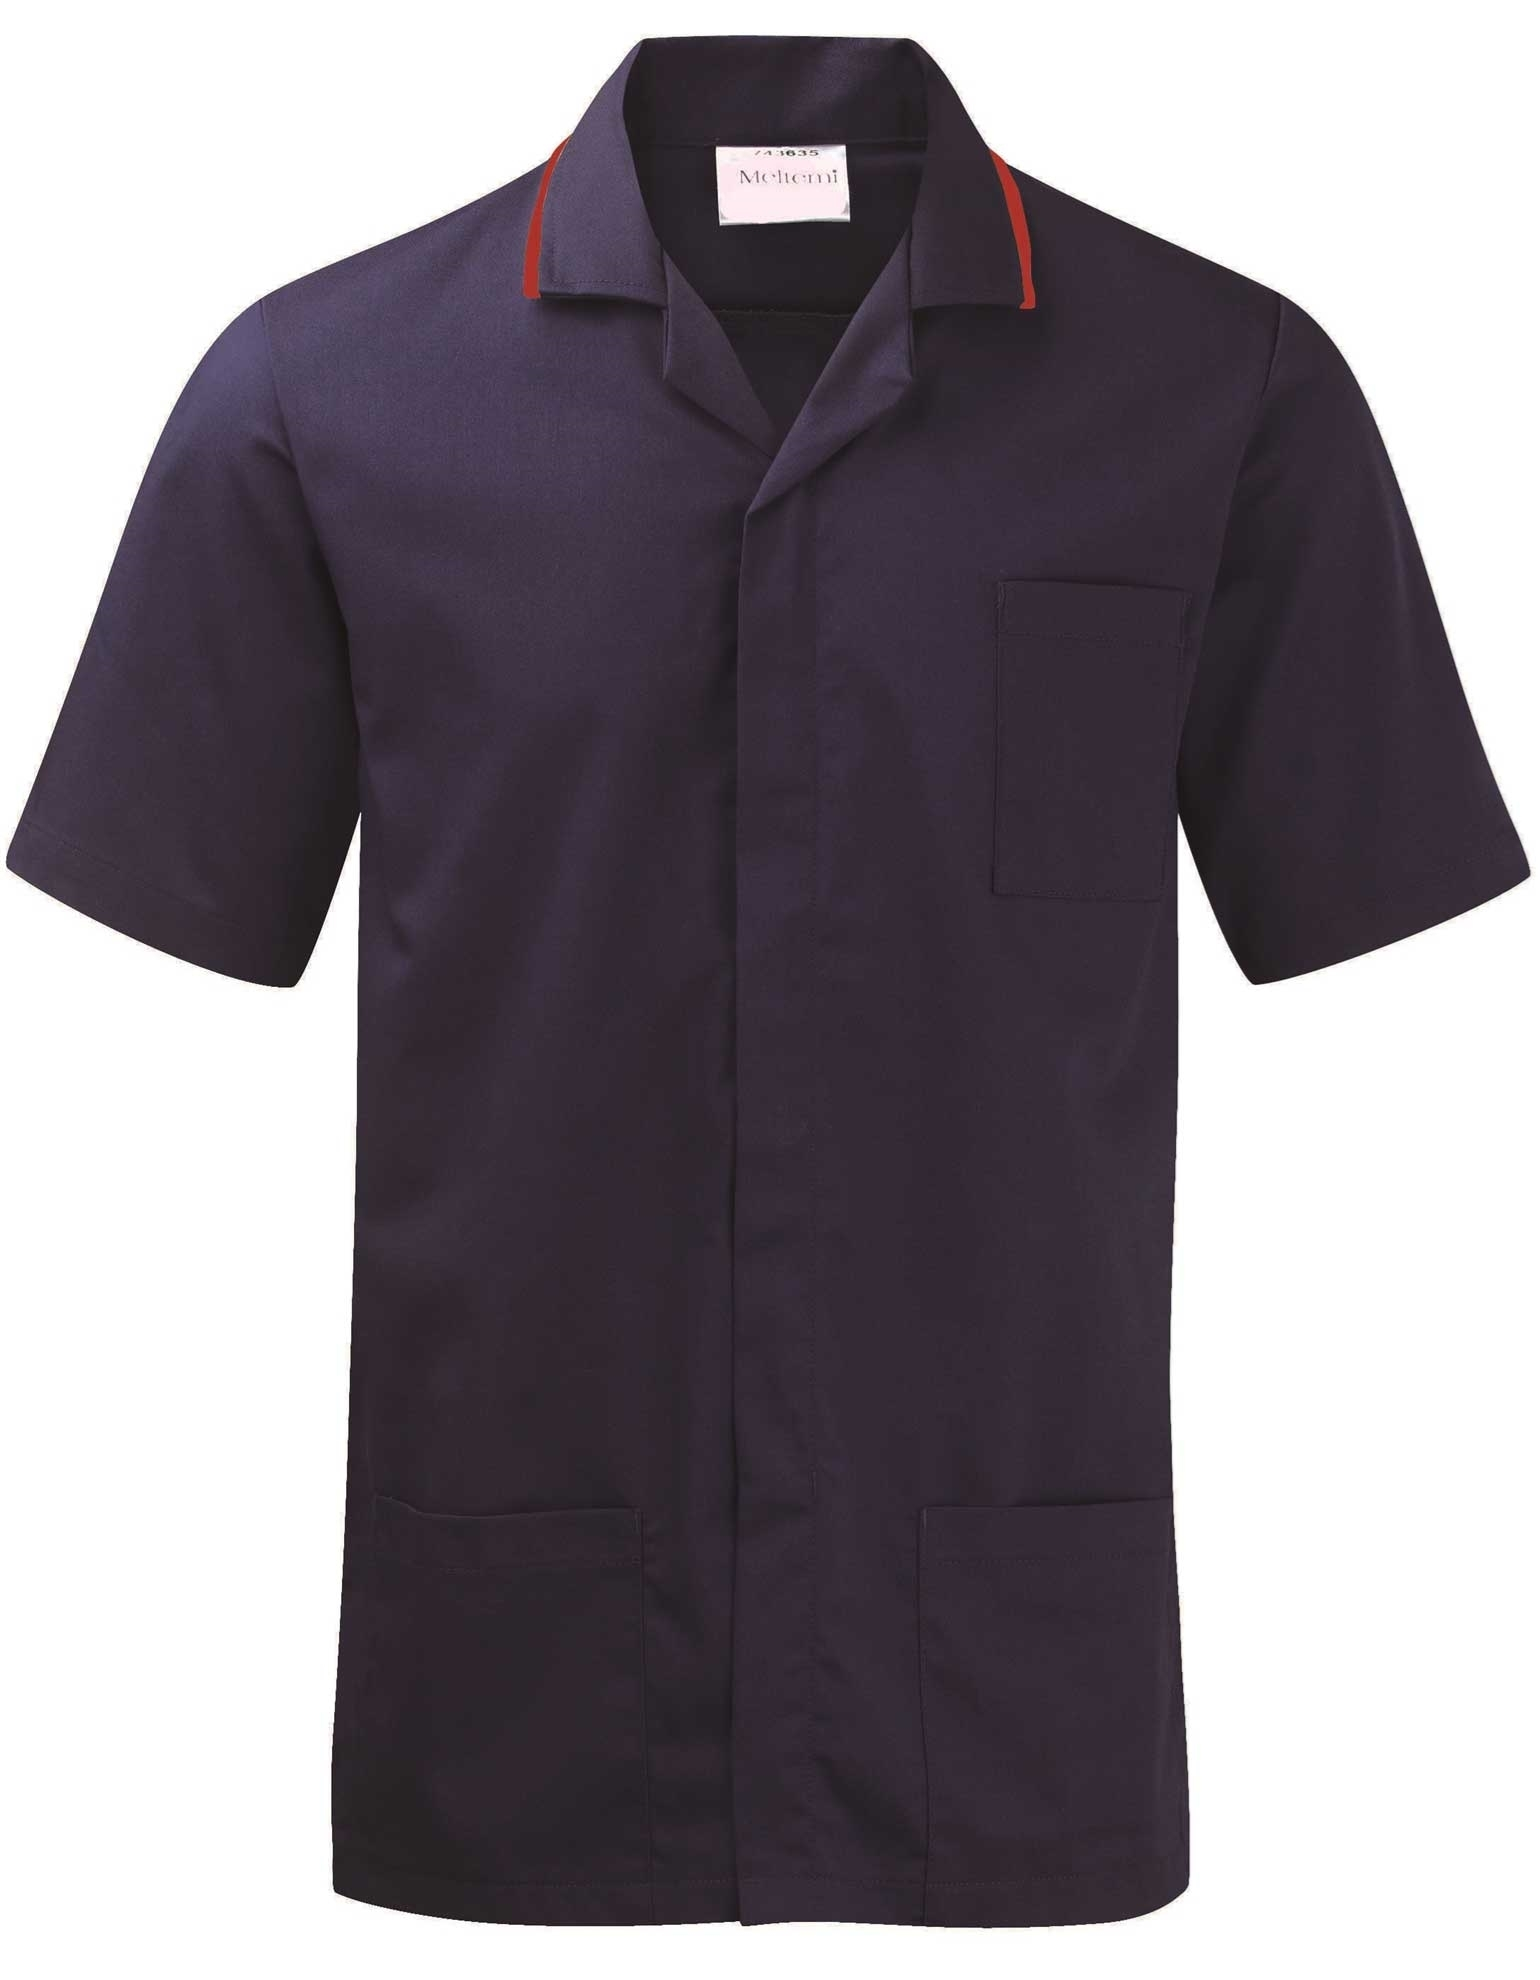 Picture of Advantage Front Fastening Tunic - Navy/Red